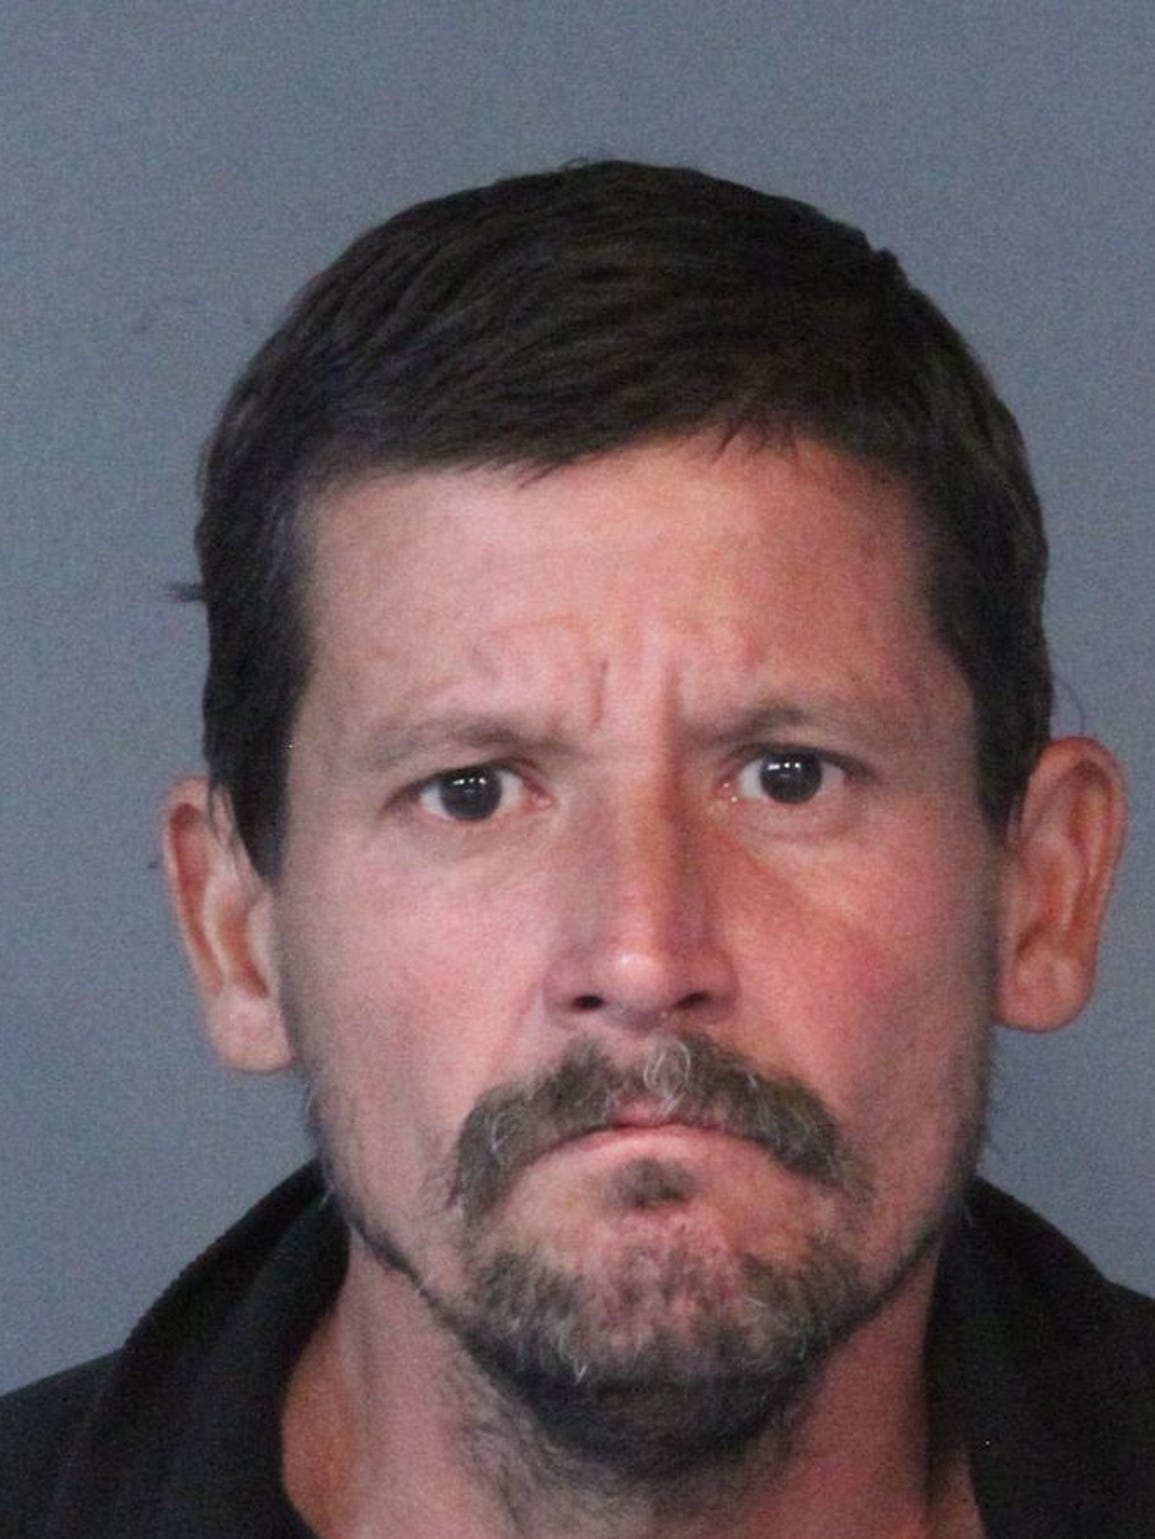 Donald Torres, who was booked in a misdemeanor charge